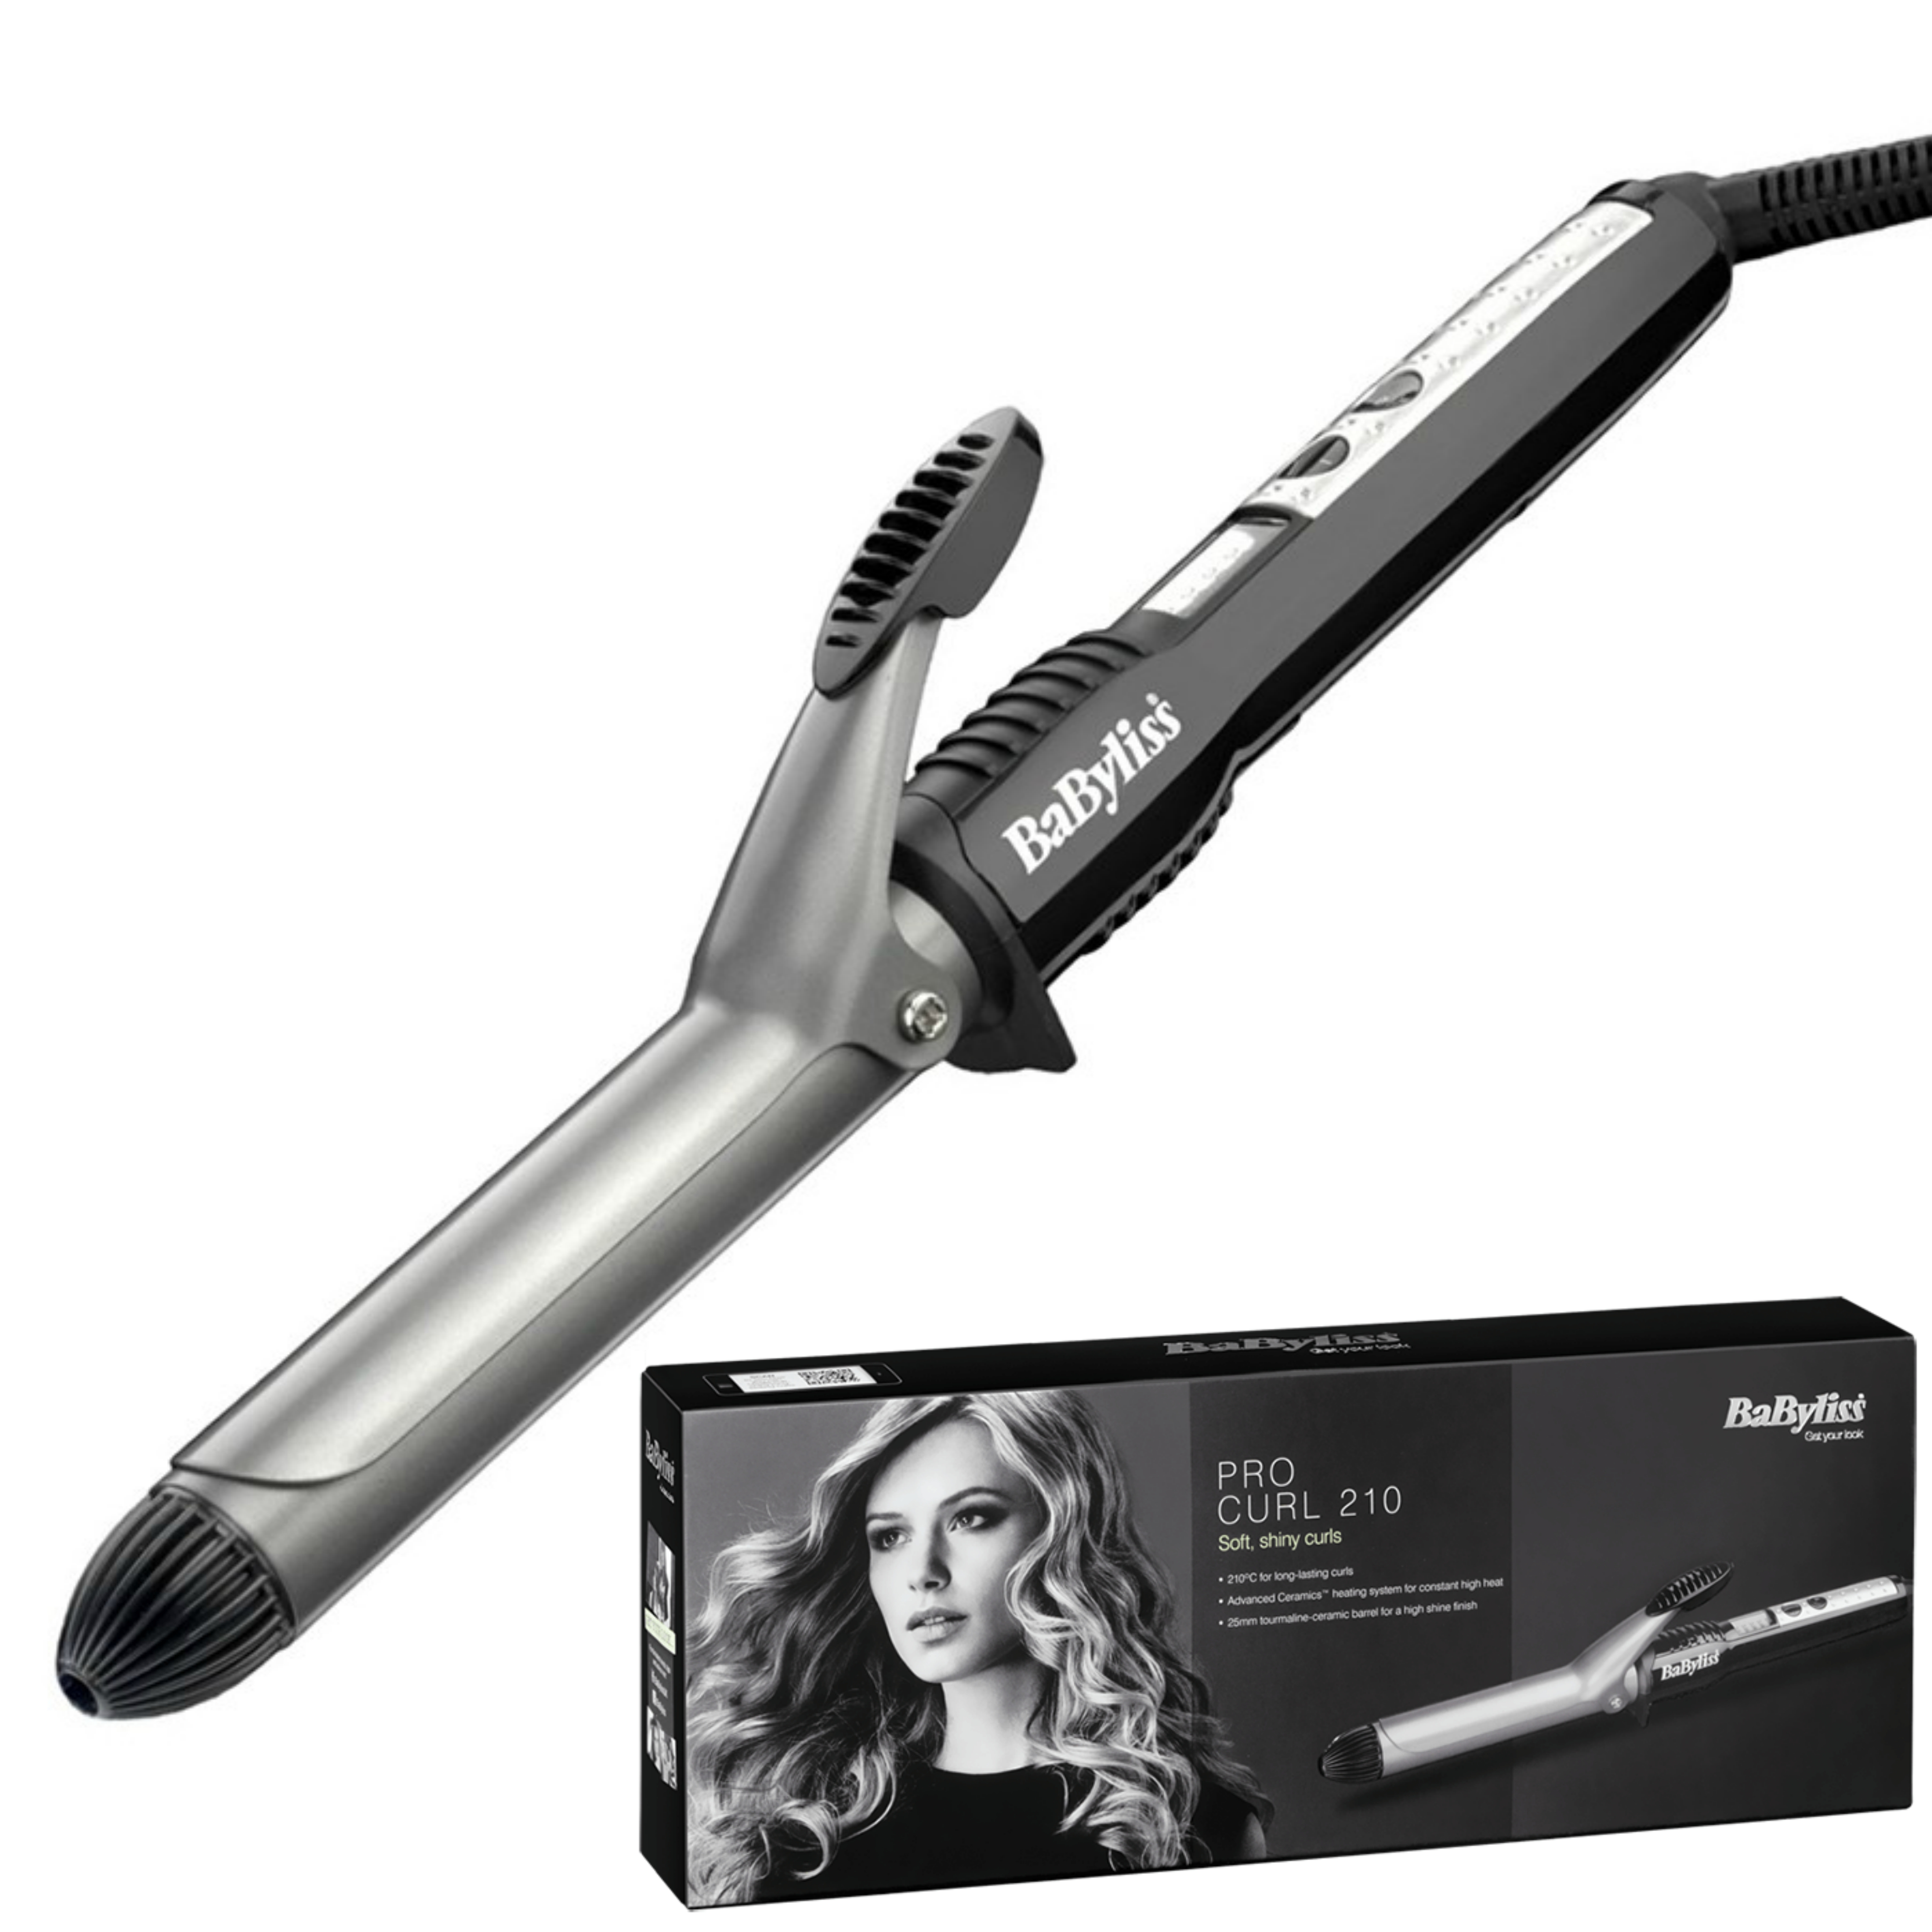 BaByliss 2284BU  New Pro Curling Tong|5 Heat Setting Up To 210°C|Ceramic Barrel|